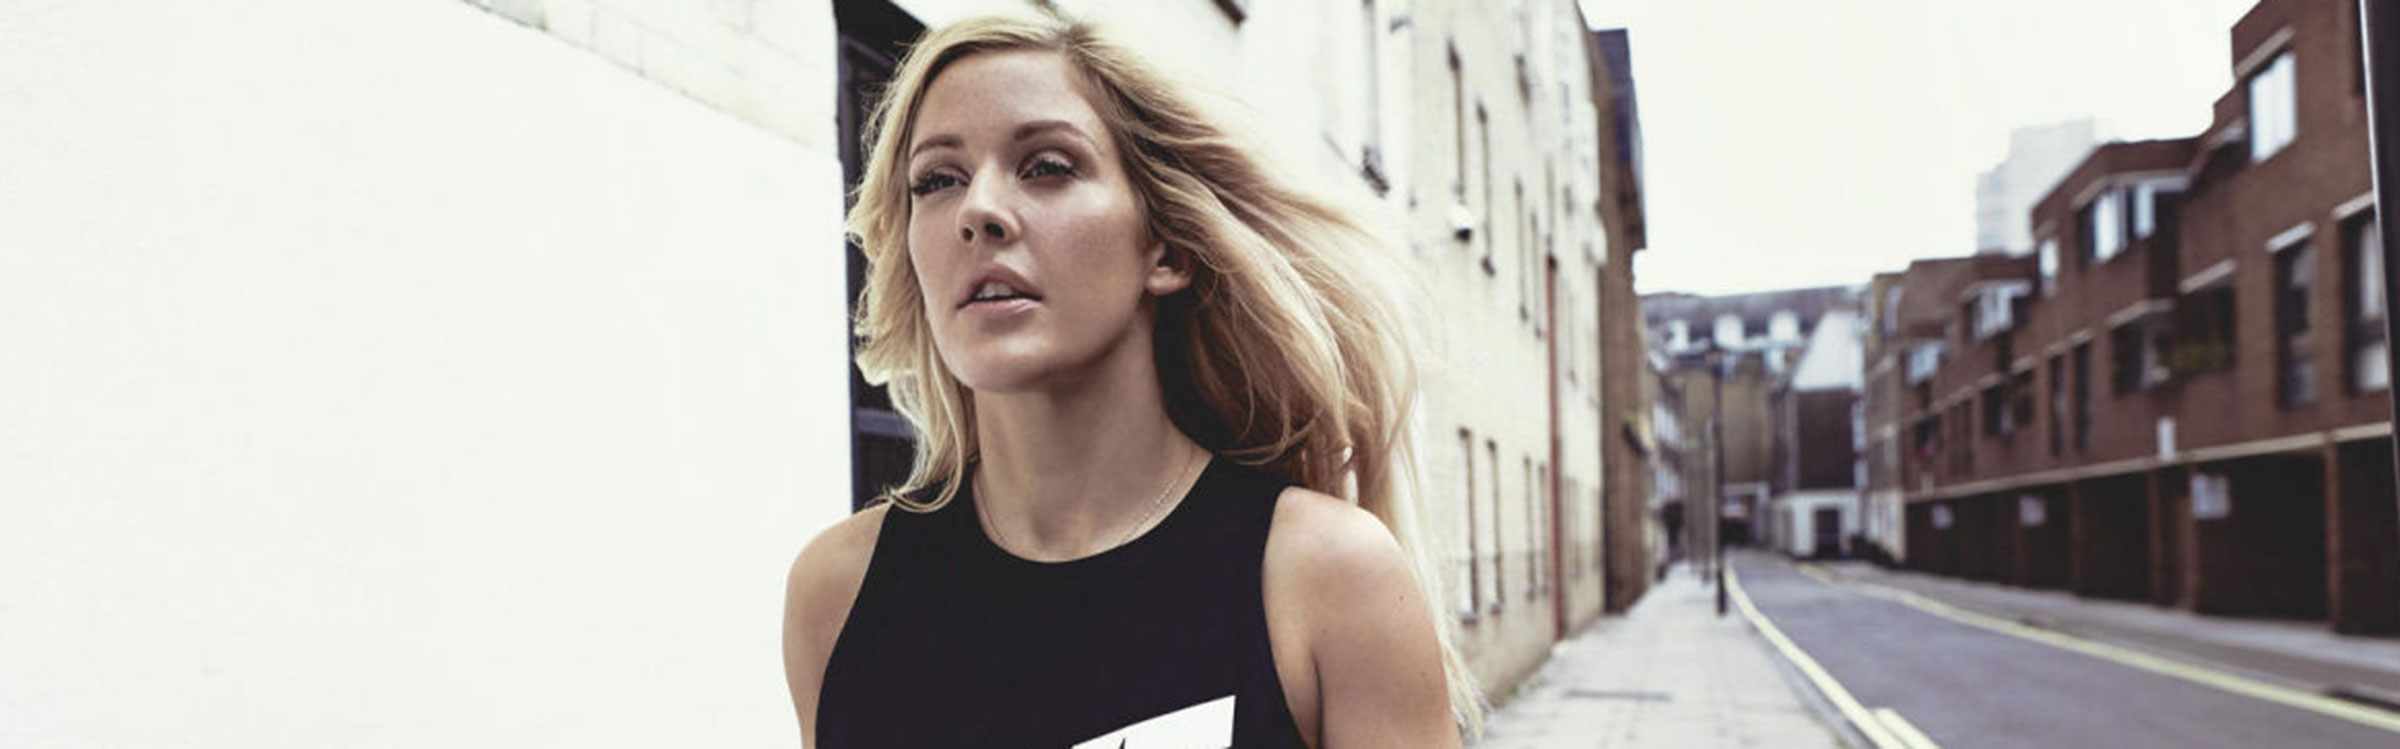 Ellie goulding 2 native 1600 1422395863